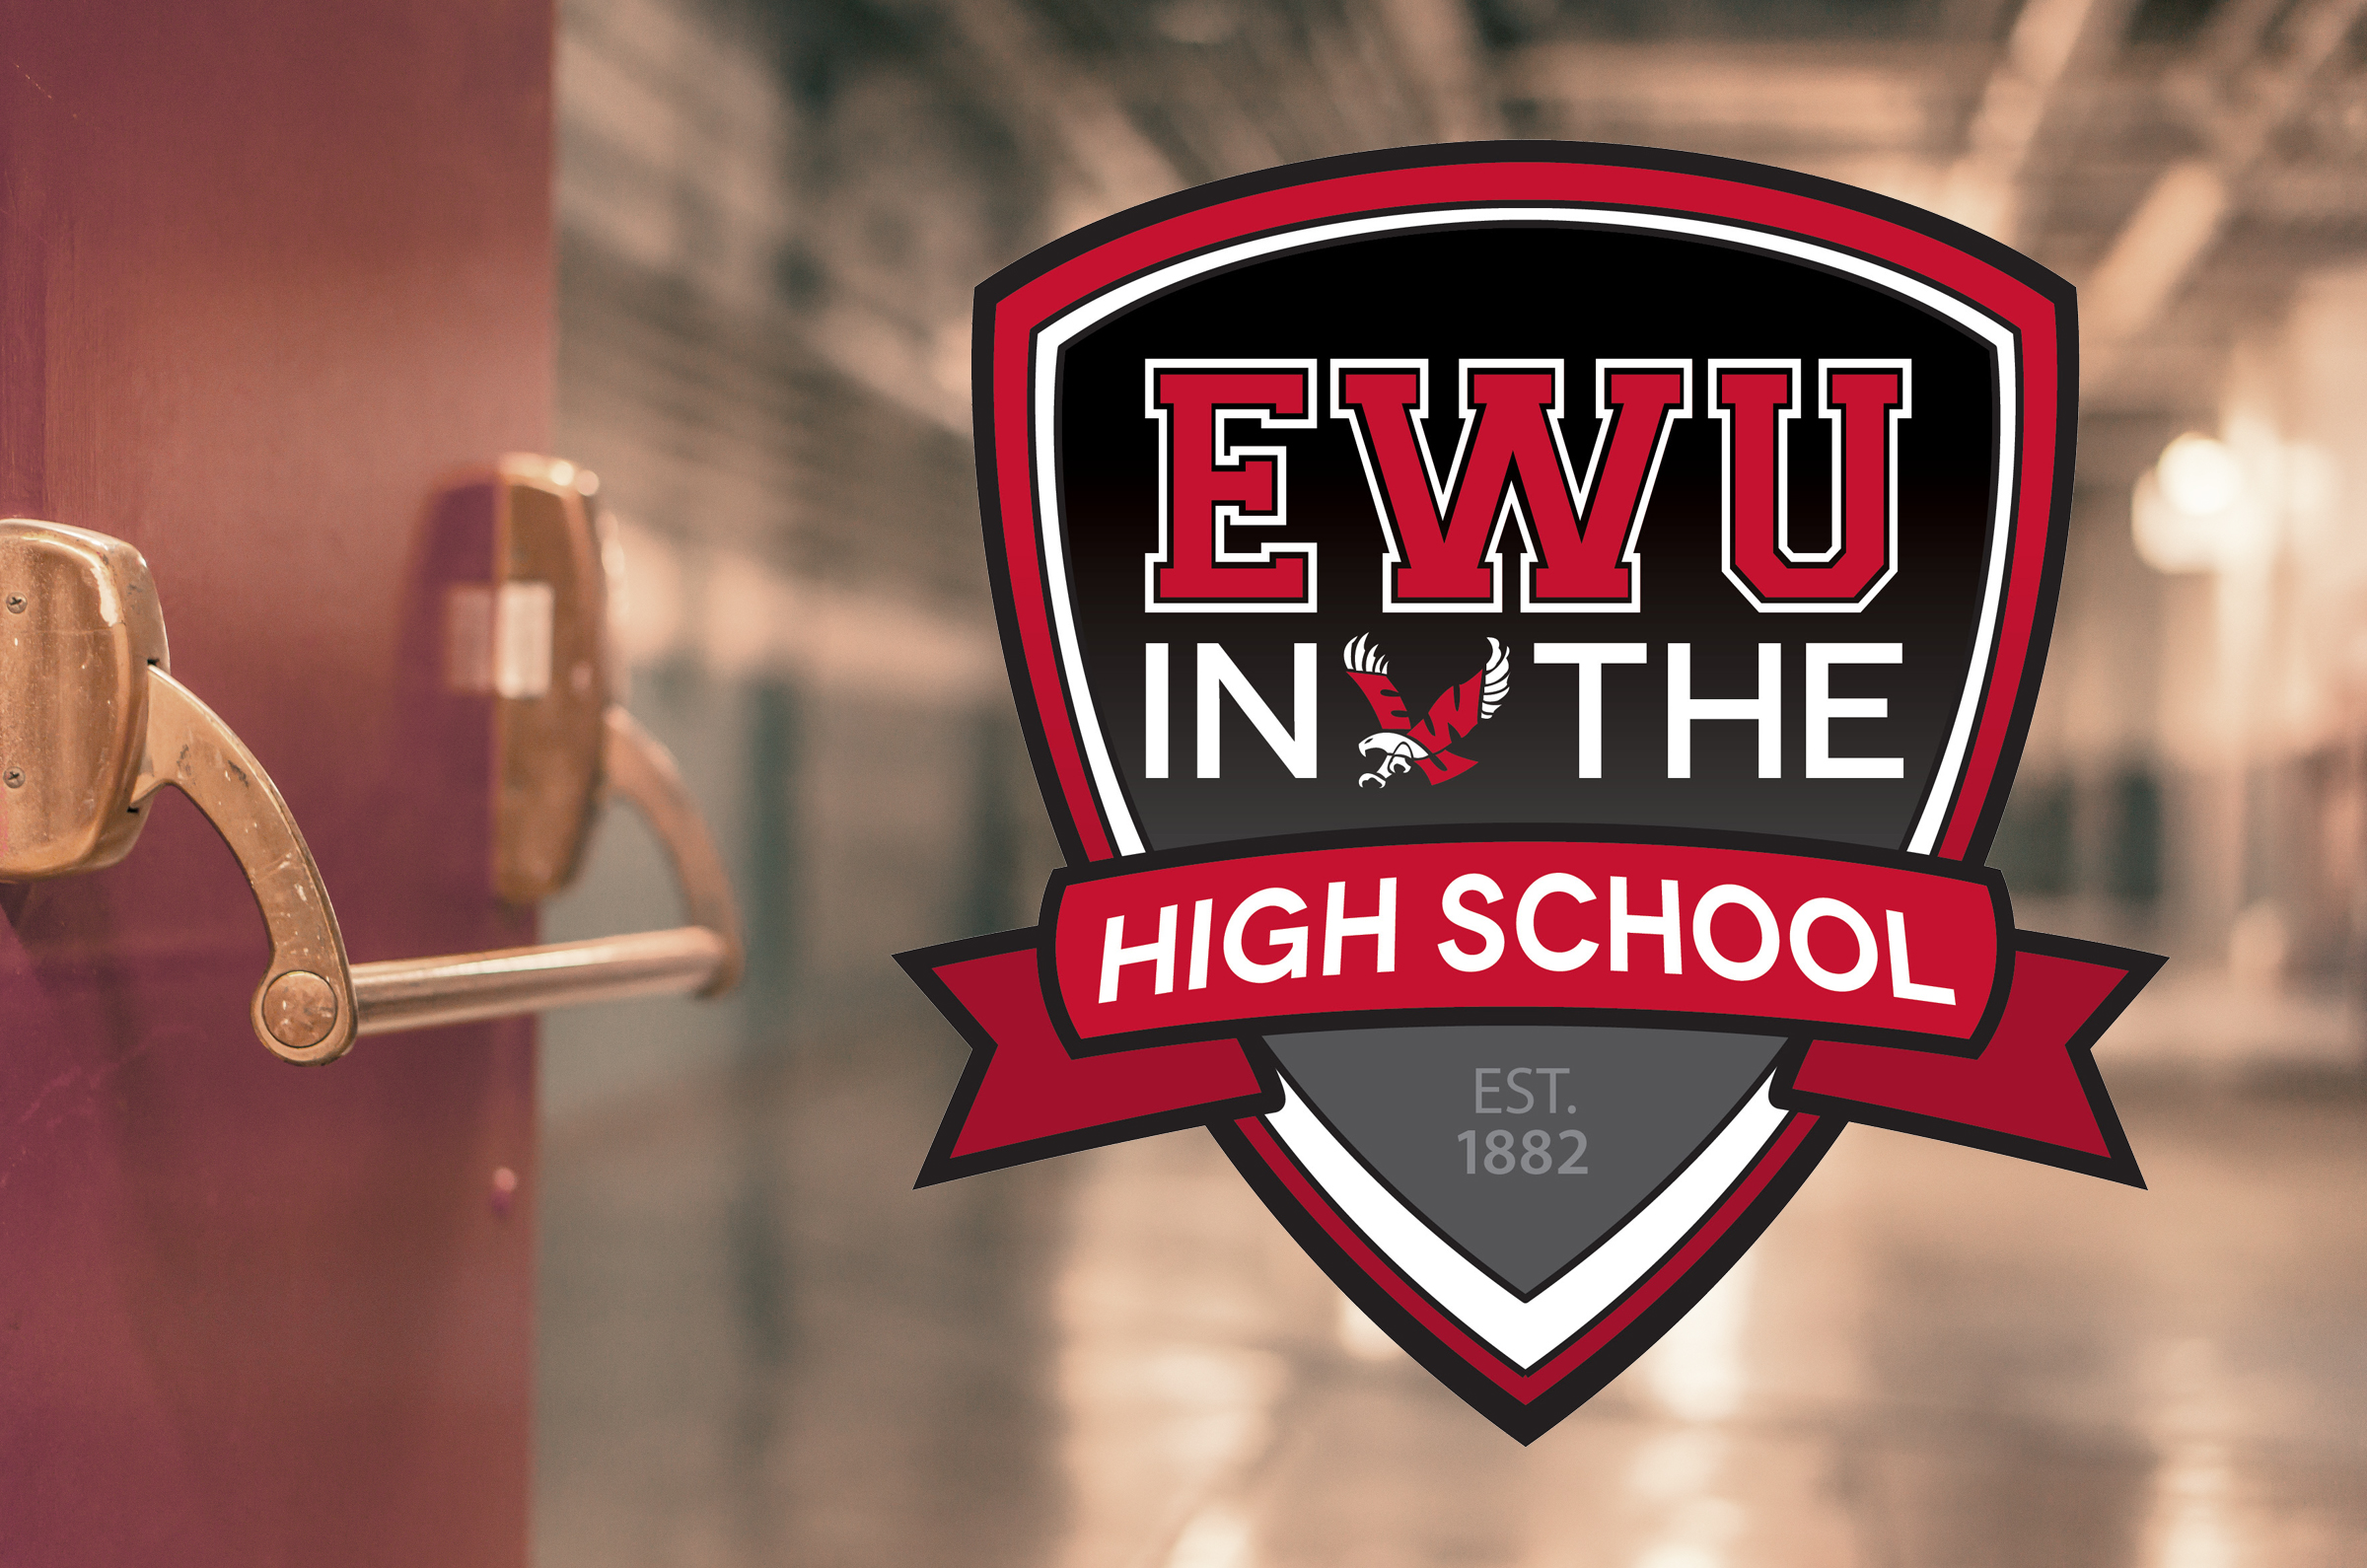 EWU in the High School